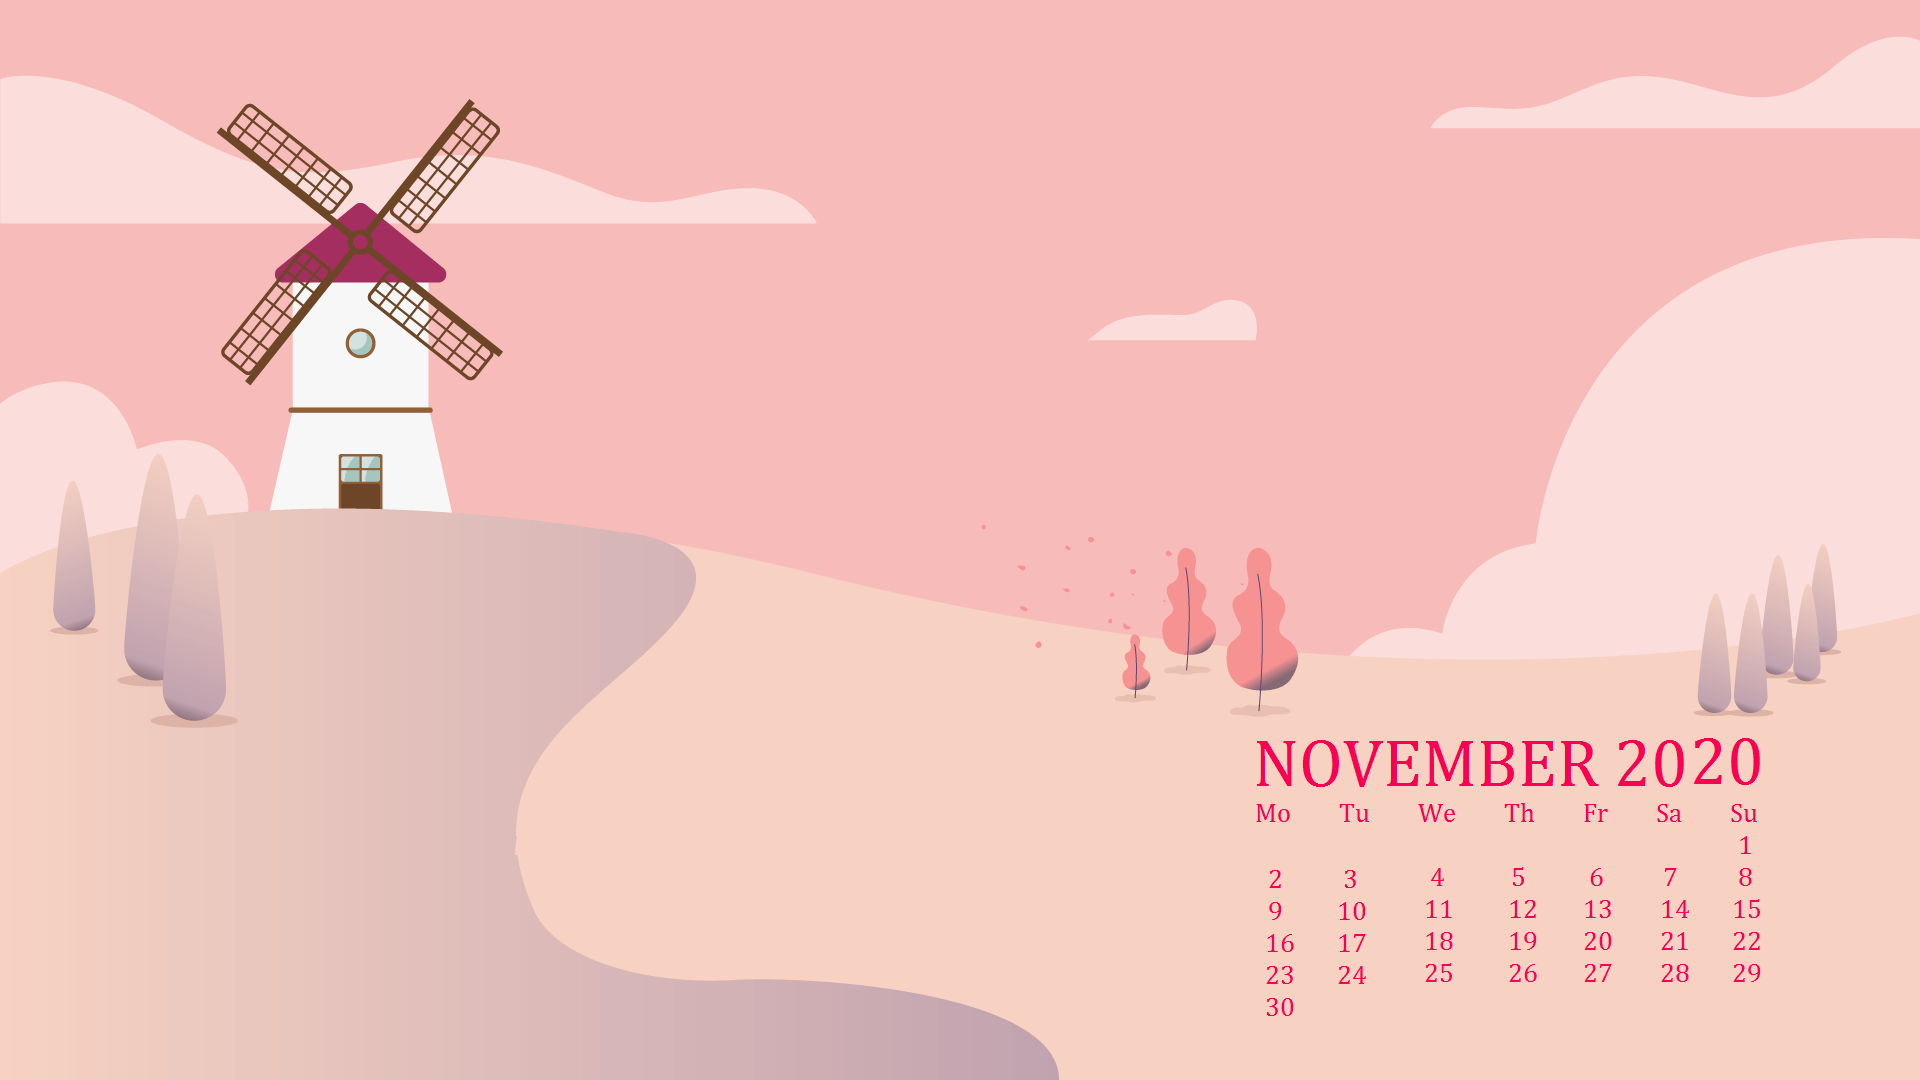 November 2020 Calendar Screensaver